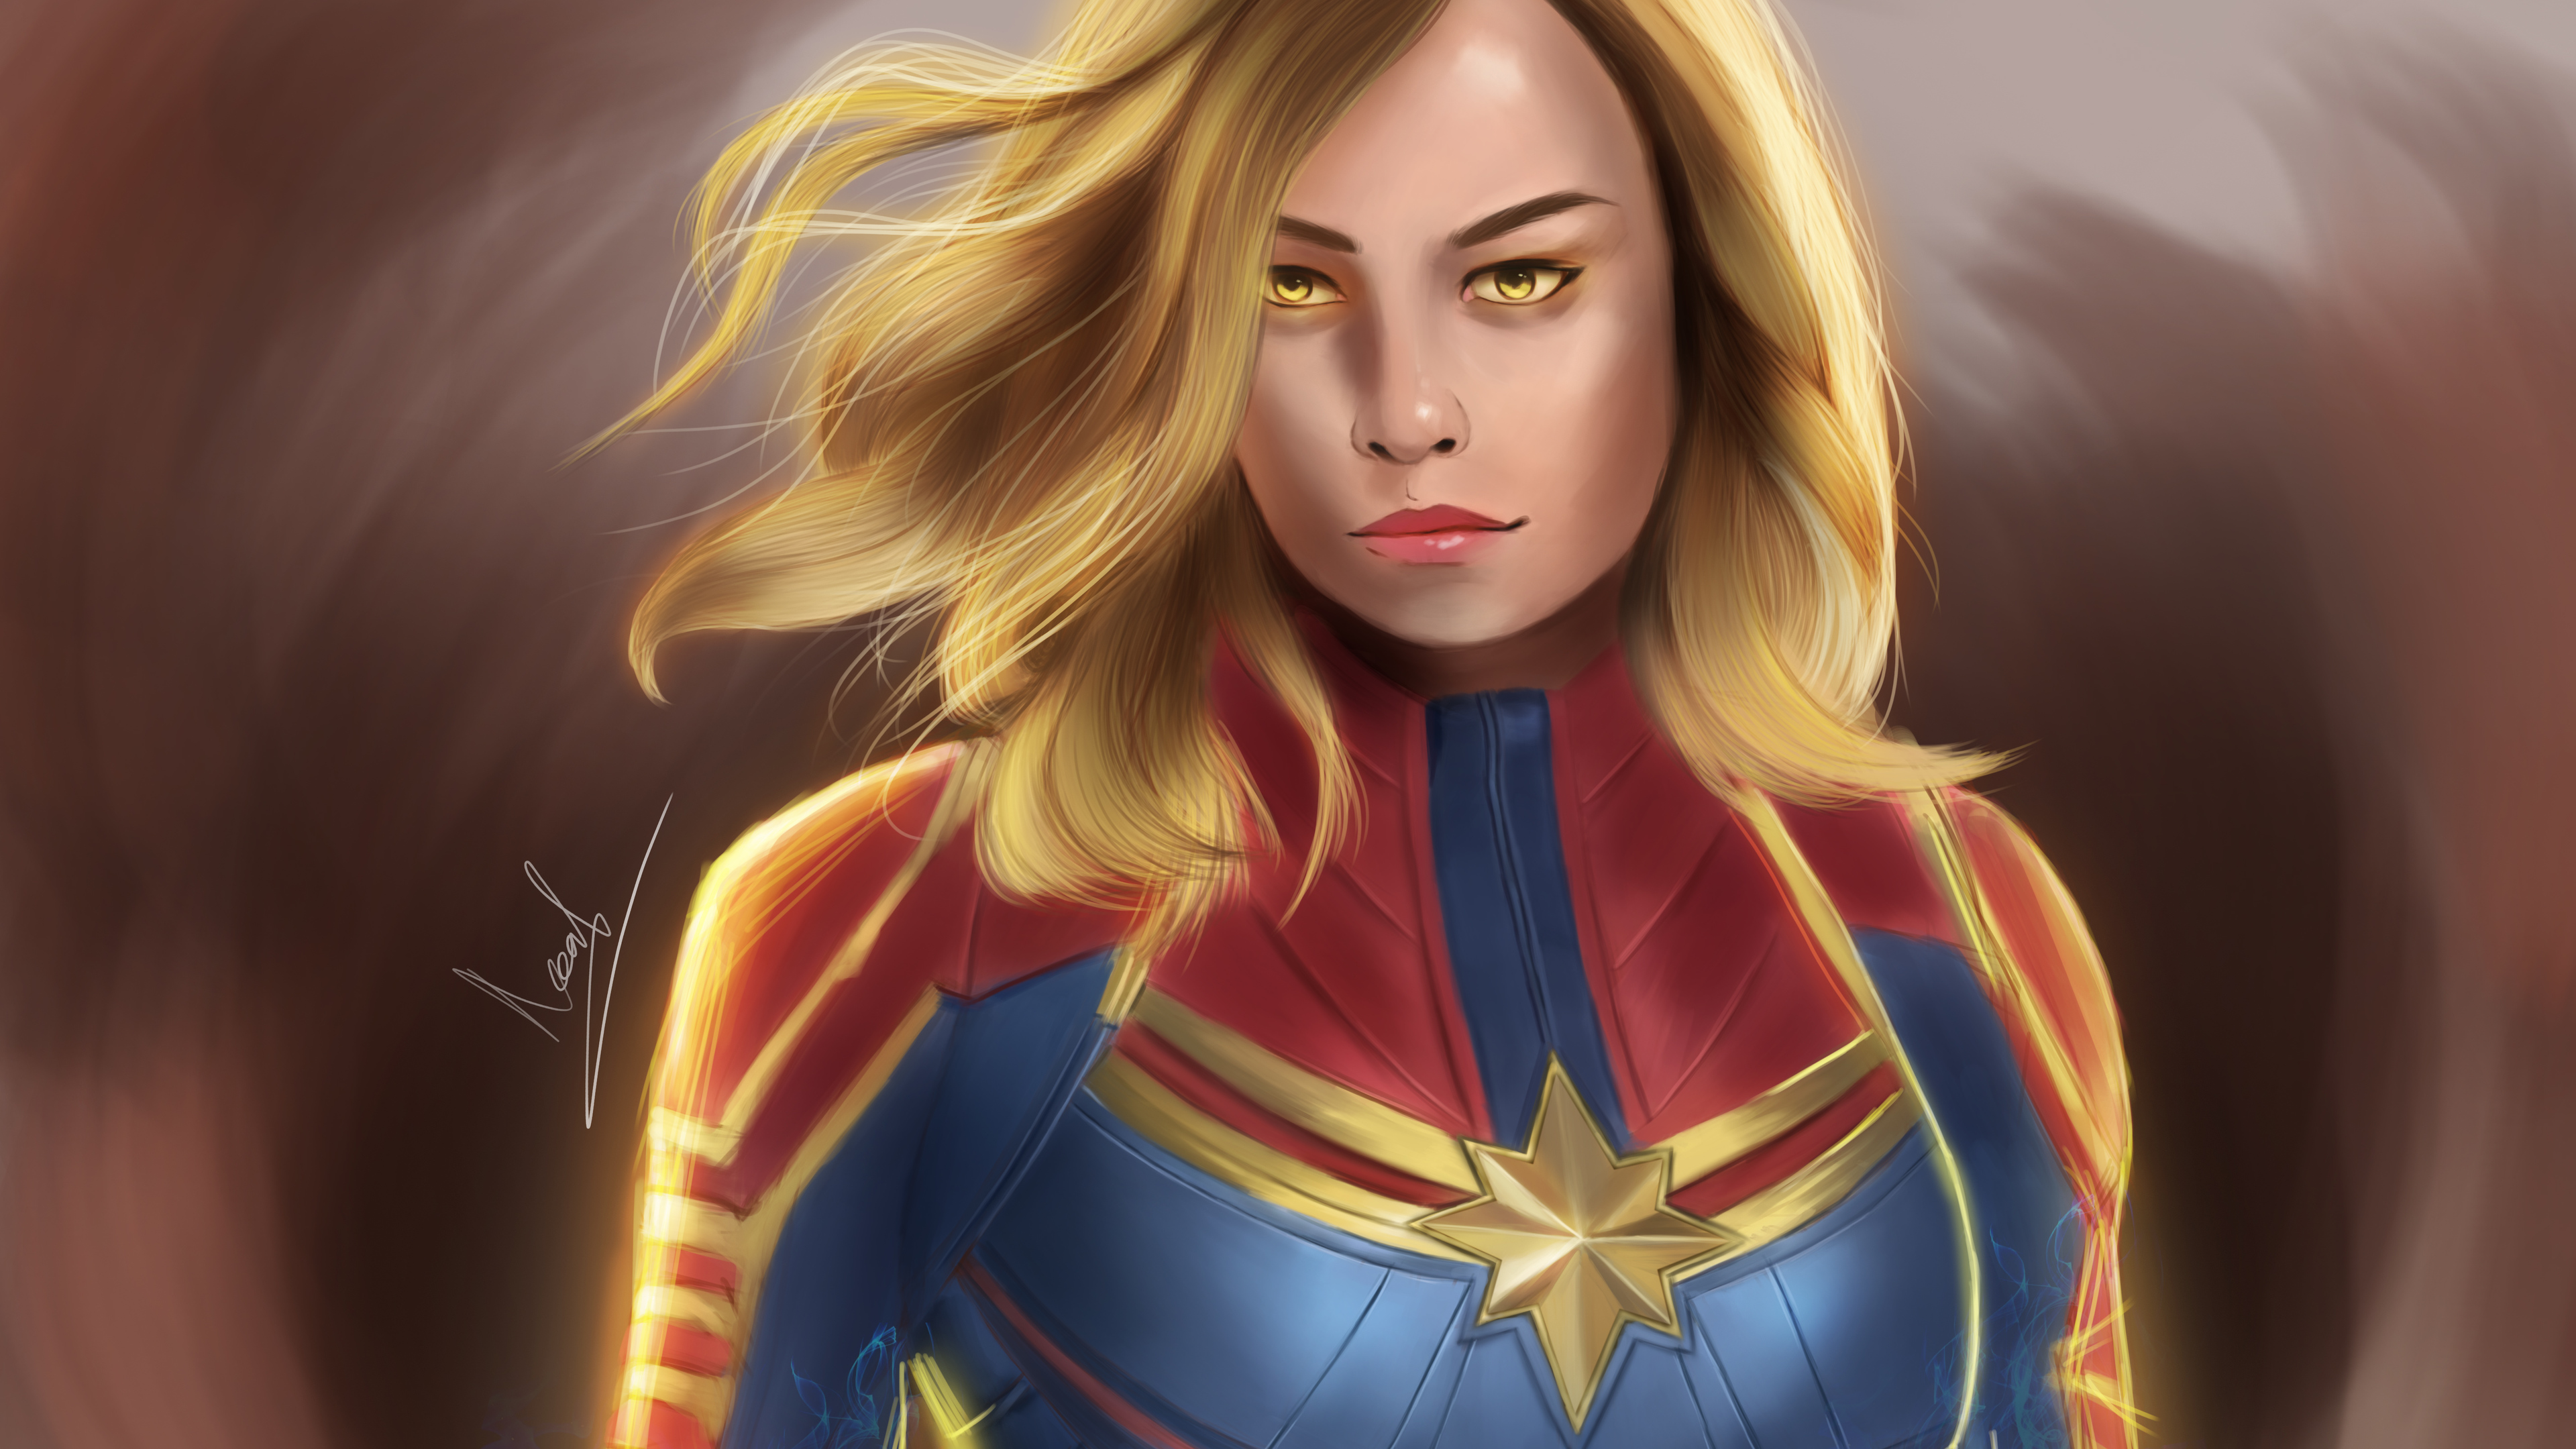 artwork captain marvel 4k 1557260128 - Artwork Captain Marvel 4k - superheroes wallpapers, hd-wallpapers, deviantart wallpapers, captain marvel wallpapers, artwork wallpapers, artist wallpapers, 4k-wallpapers